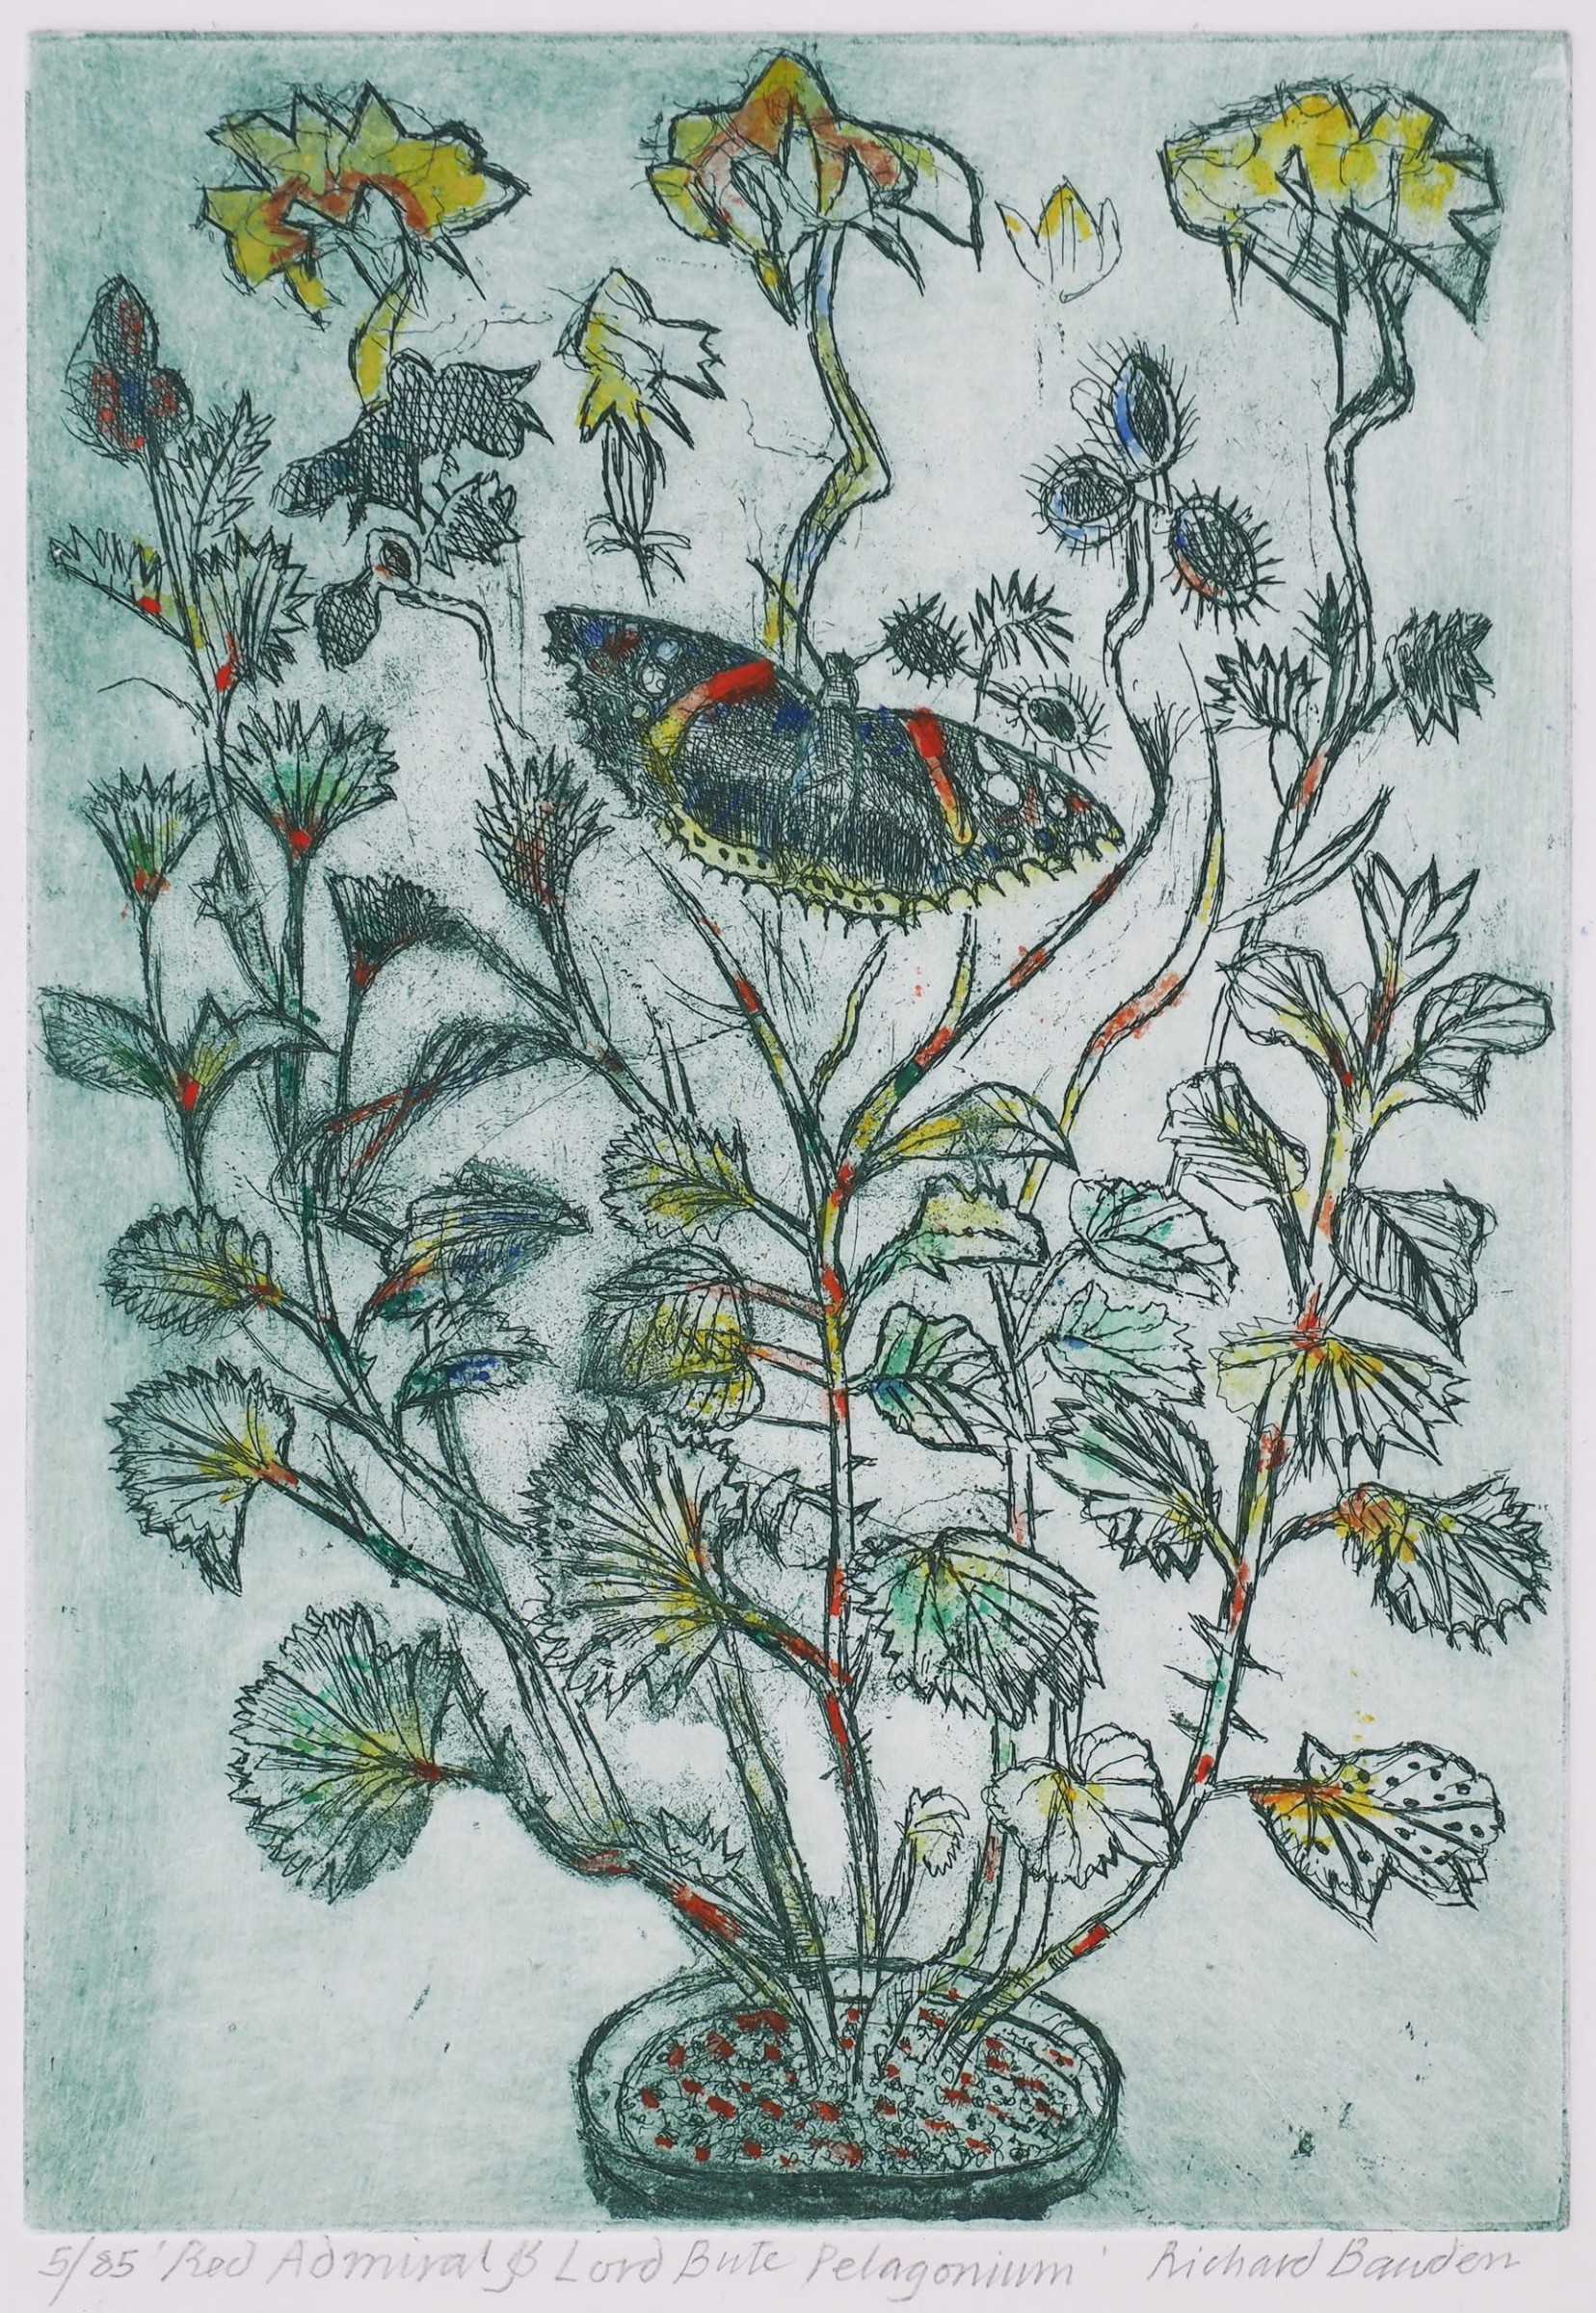 """<span class=""""link fancybox-details-link""""><a href=""""/artists/38-richard-bawden/works/12345-richard-bawden-red-admiral-and-lord-bute/"""">View Detail Page</a></span><div class=""""artist""""><span class=""""artist""""><strong>Richard Bawden</strong></span></div><div class=""""title""""><em>Red Admiral and Lord Bute</em></div><div class=""""medium"""">hand coloured etching</div><div class=""""dimensions"""">Frame: 43 x 32 cm<br /> Artwork: 29 x 20 cm</div><div class=""""price"""">£310.00</div>"""